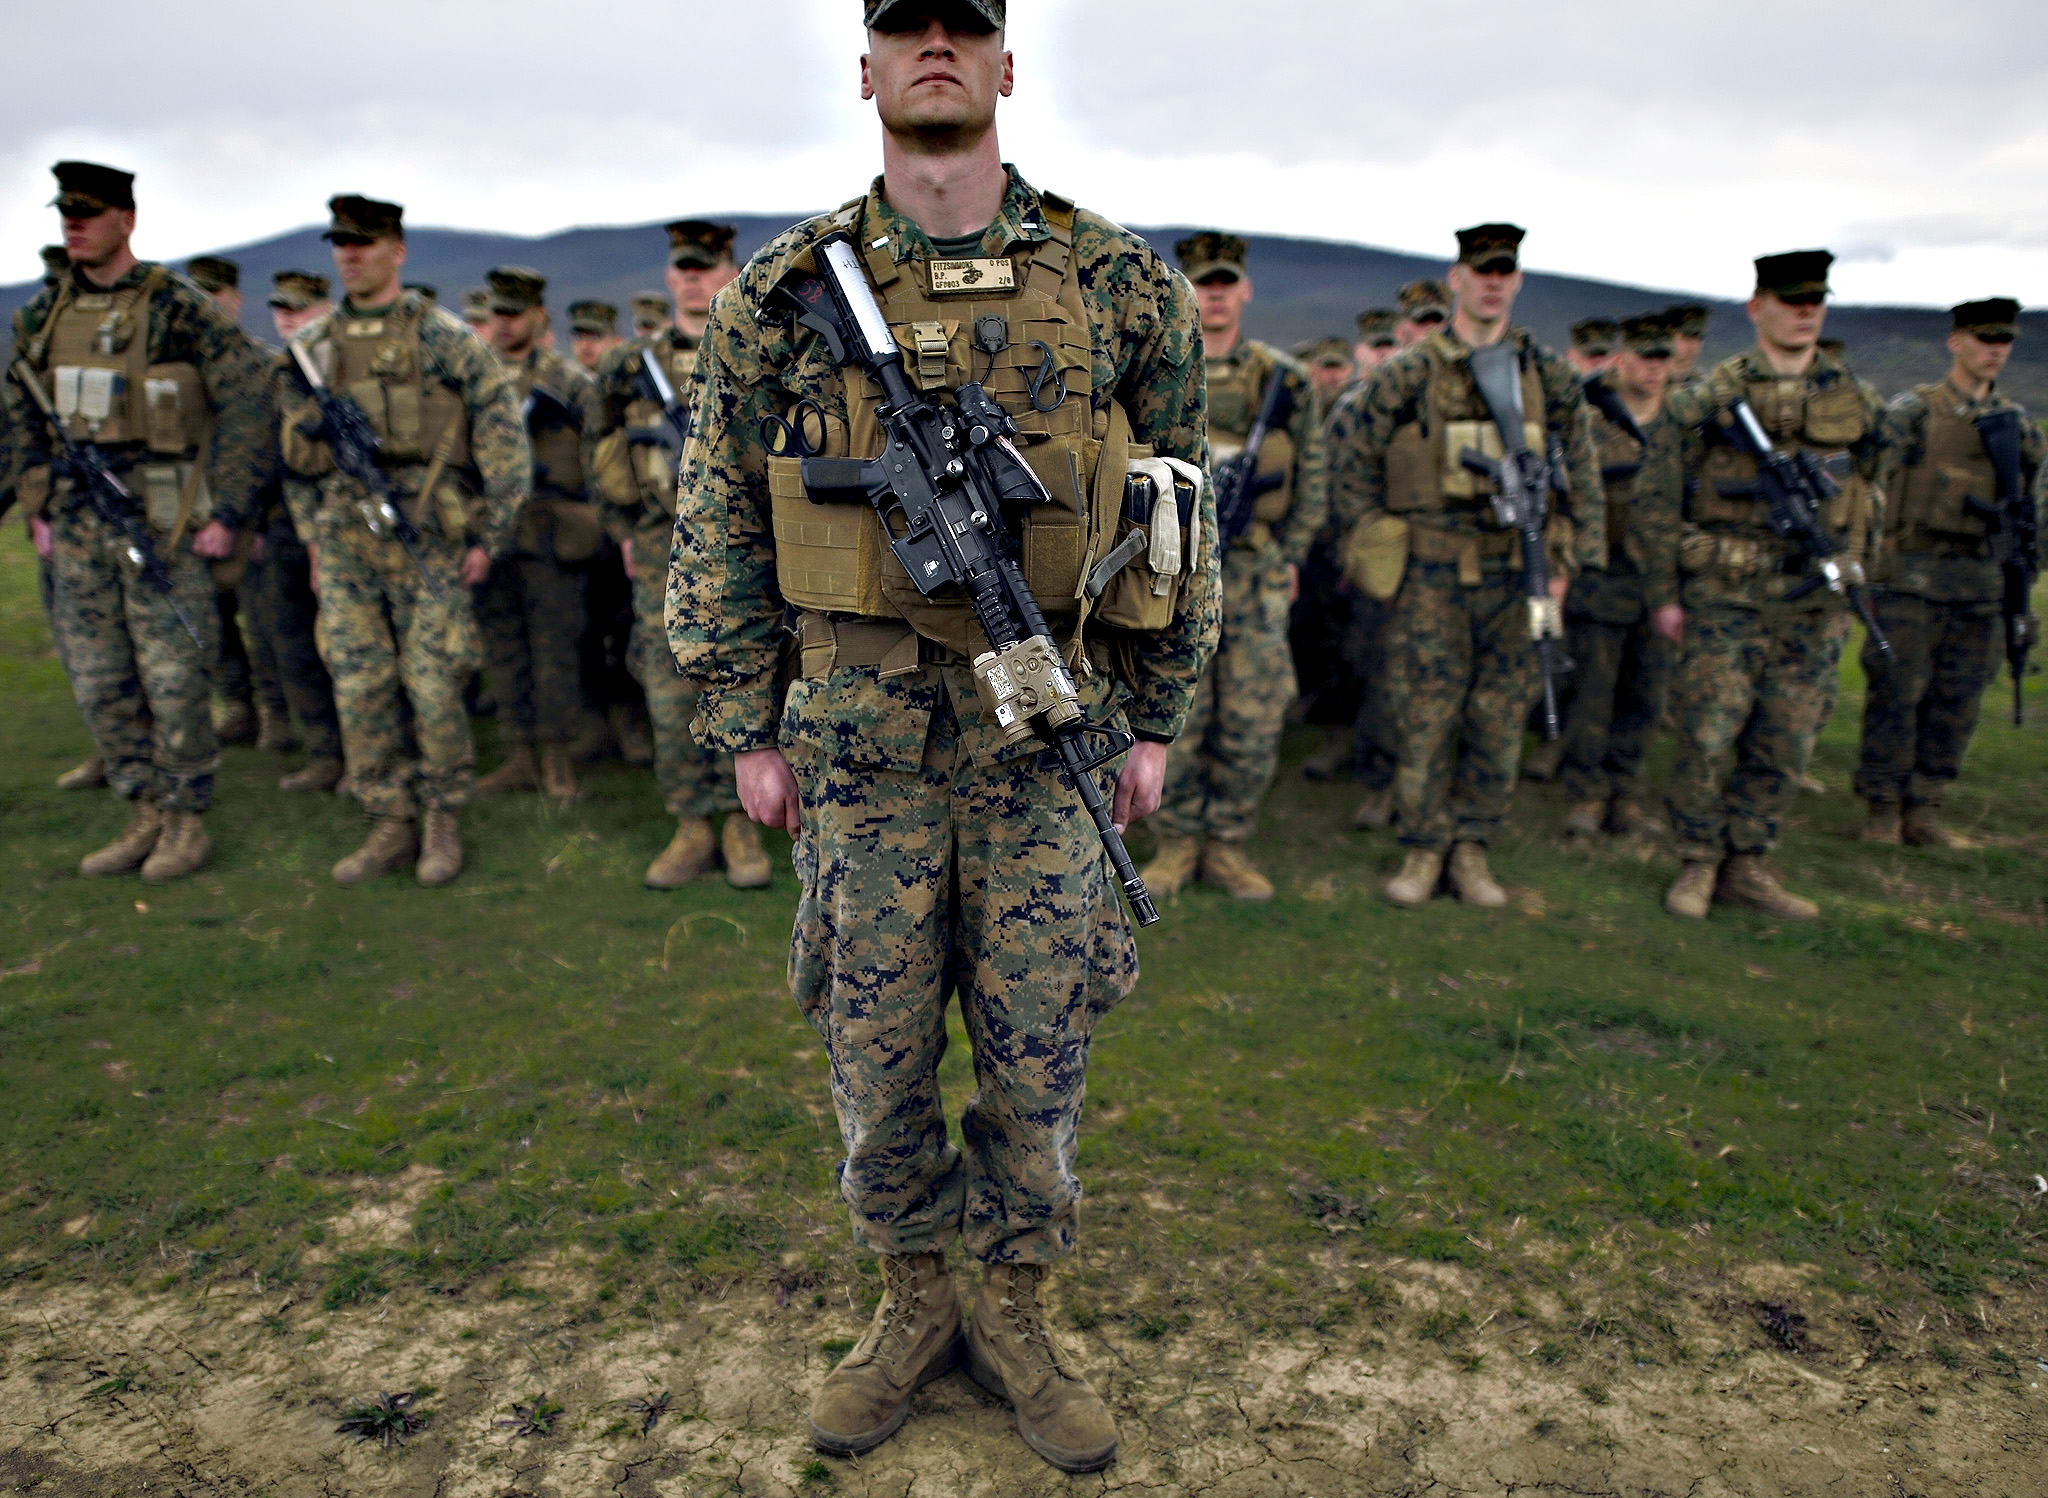 US Marines stand at attention during the military exercise 'Platinum Lion 15-2' at the Novo Selo military base near the town of Sliven, some 290 kms from Sofia, Bulgaria on Tuesday. Bulgaria and the US are holding the joint military training at the Novo Selo site in Eastern Bulgaria, as part of the Bulgarian-American plan for joint military trainings and exercises scheduled in 2015